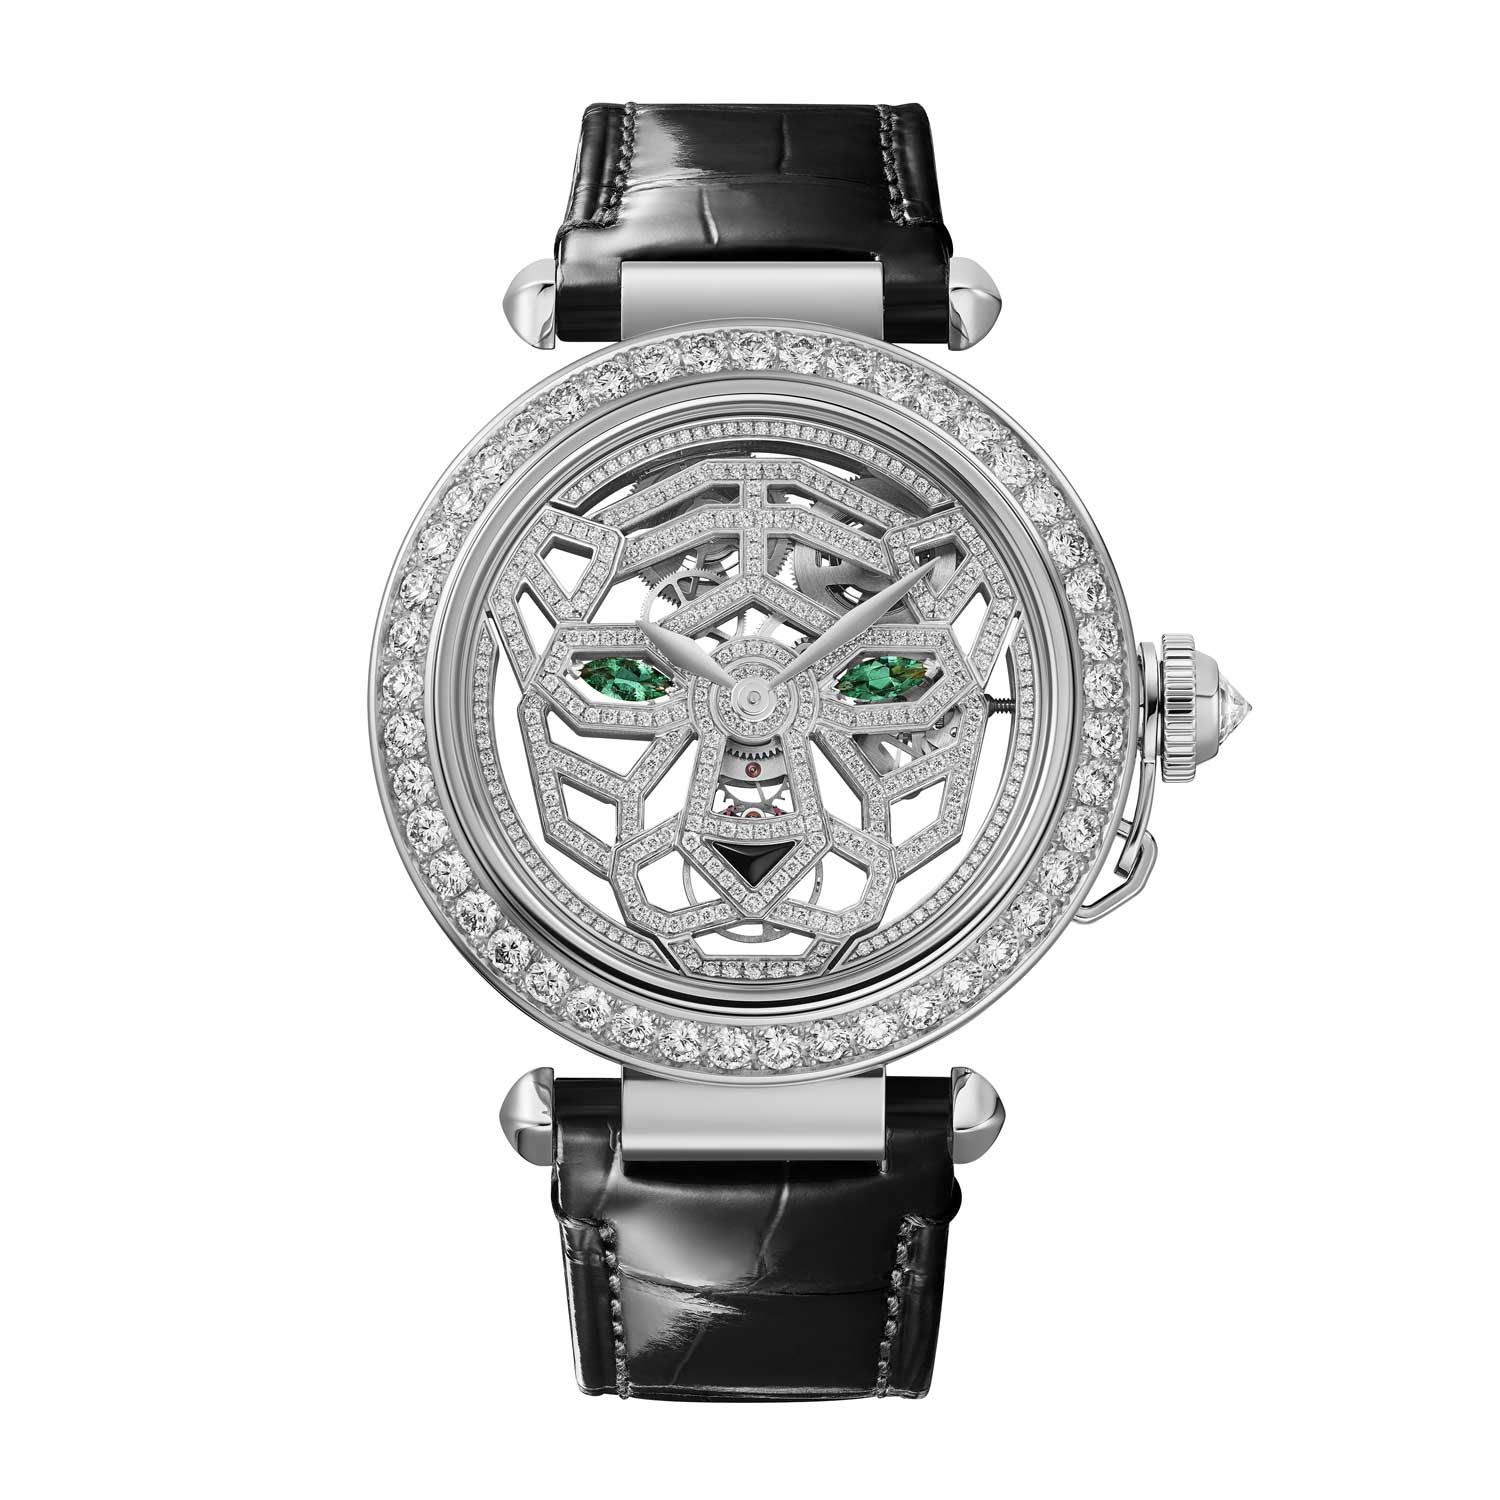 For ladies, Cartier is also offering a series of brilliant diamond-set Pasha watches featuring a skeletonized Panther motif in the dial, and which feature a mechanical 9625 MC movement